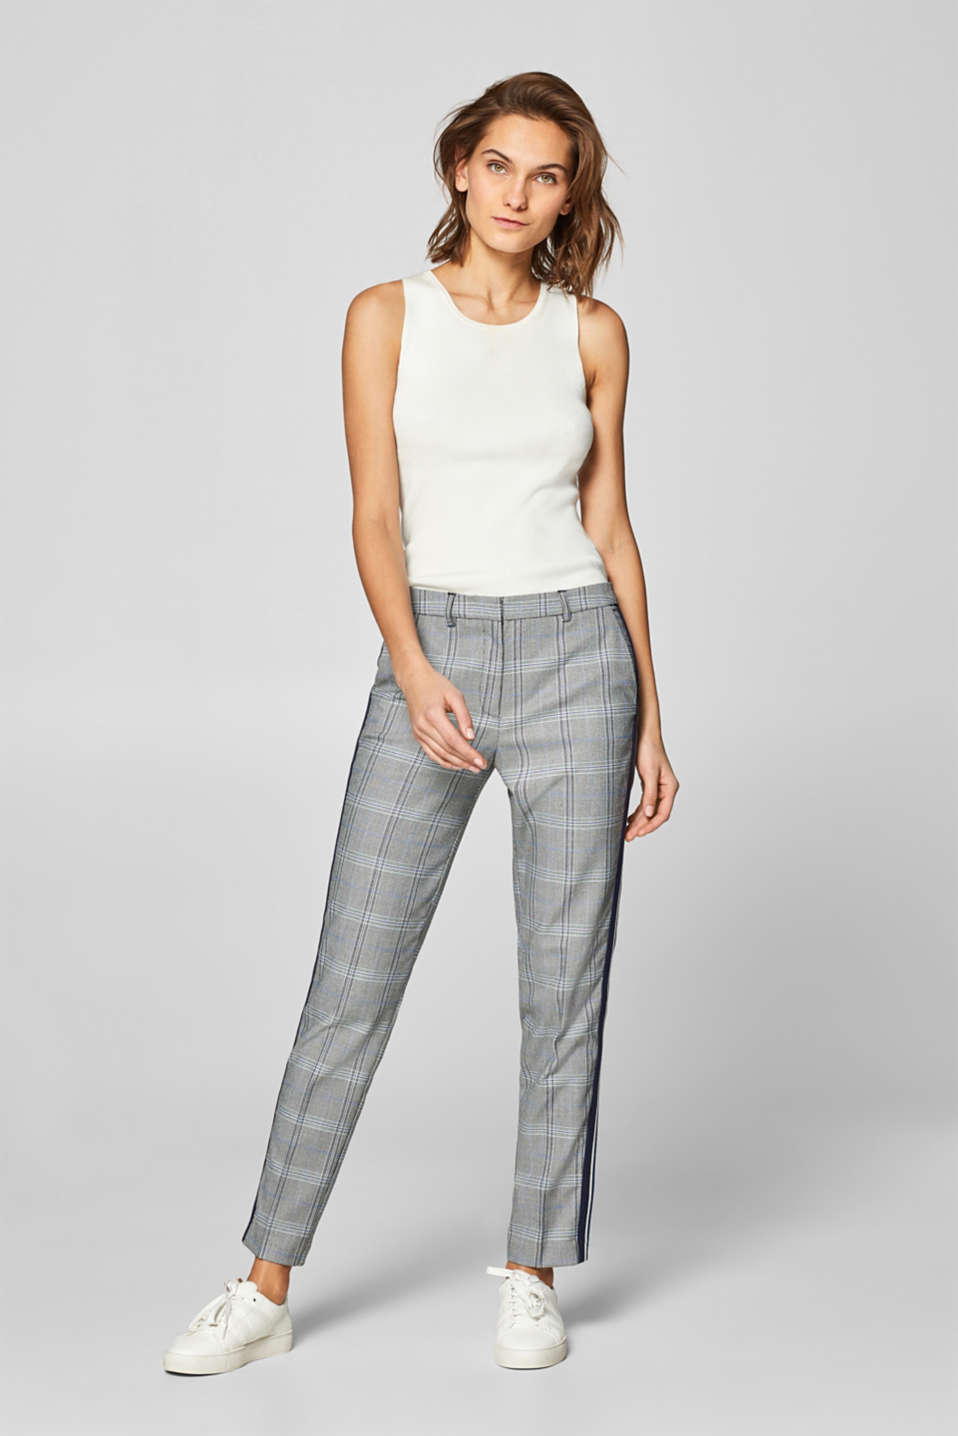 Esprit - Pantalon stretch CHECK Mix + Match